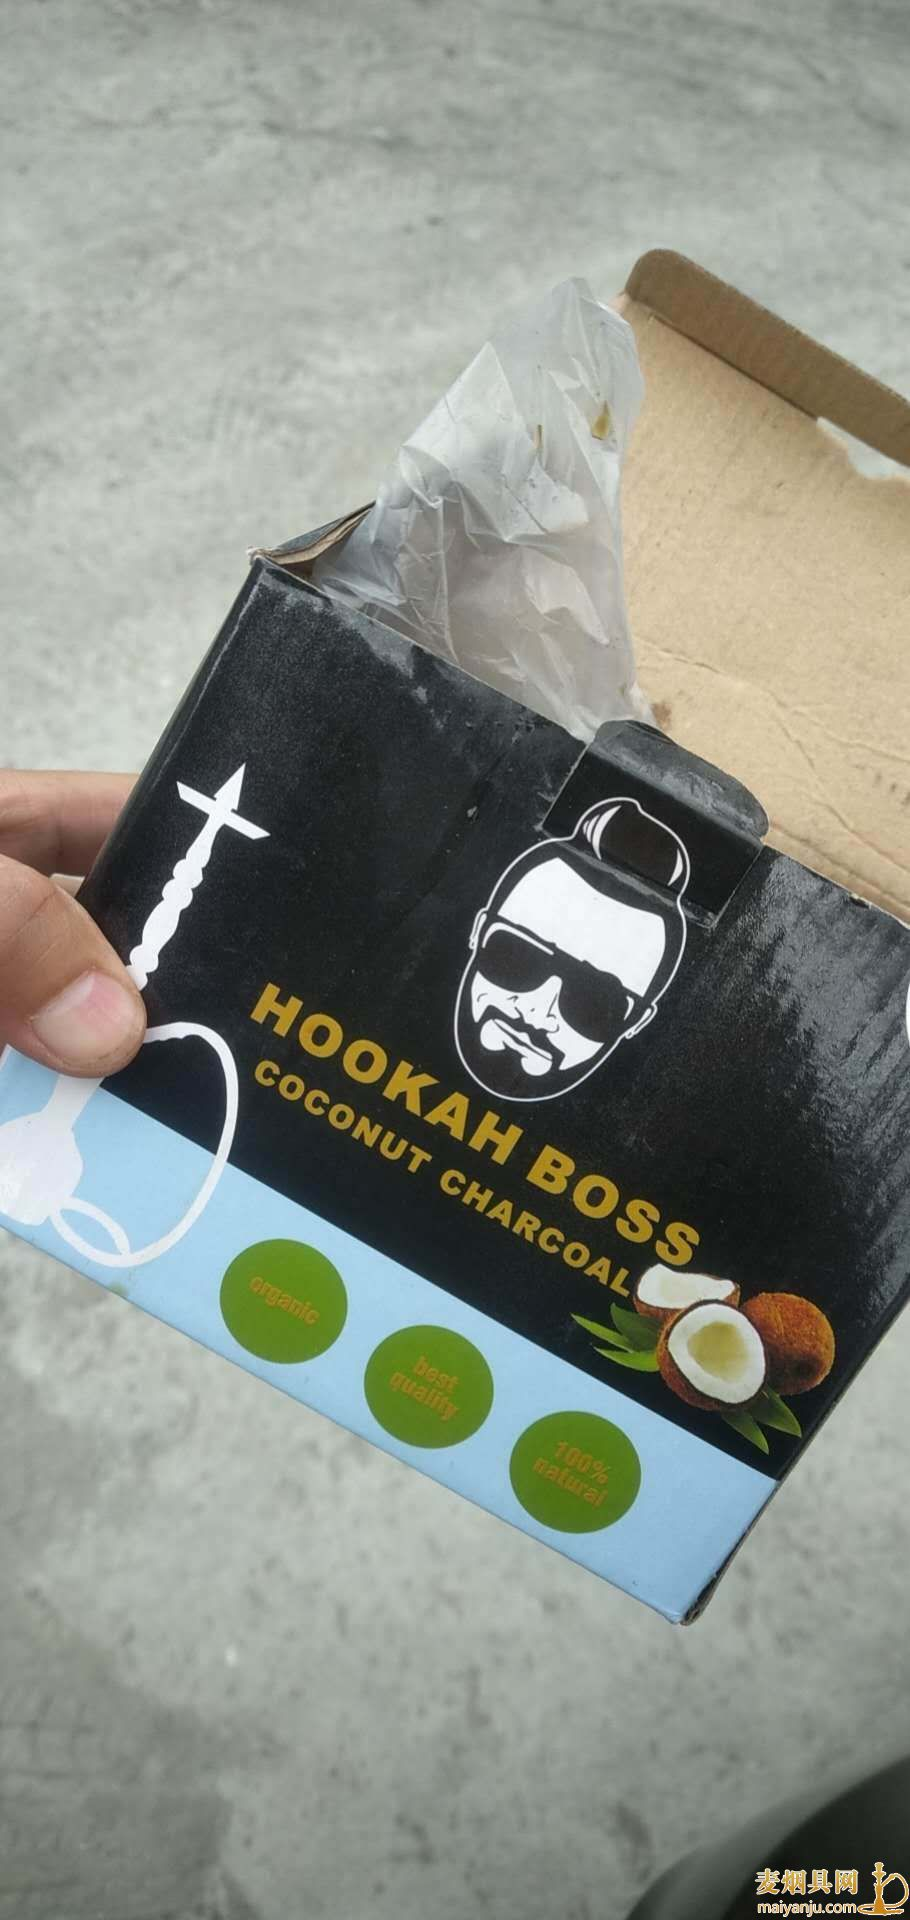 阿拉伯水烟椰壳炭三角碳hookah boss coconut charcoal图片